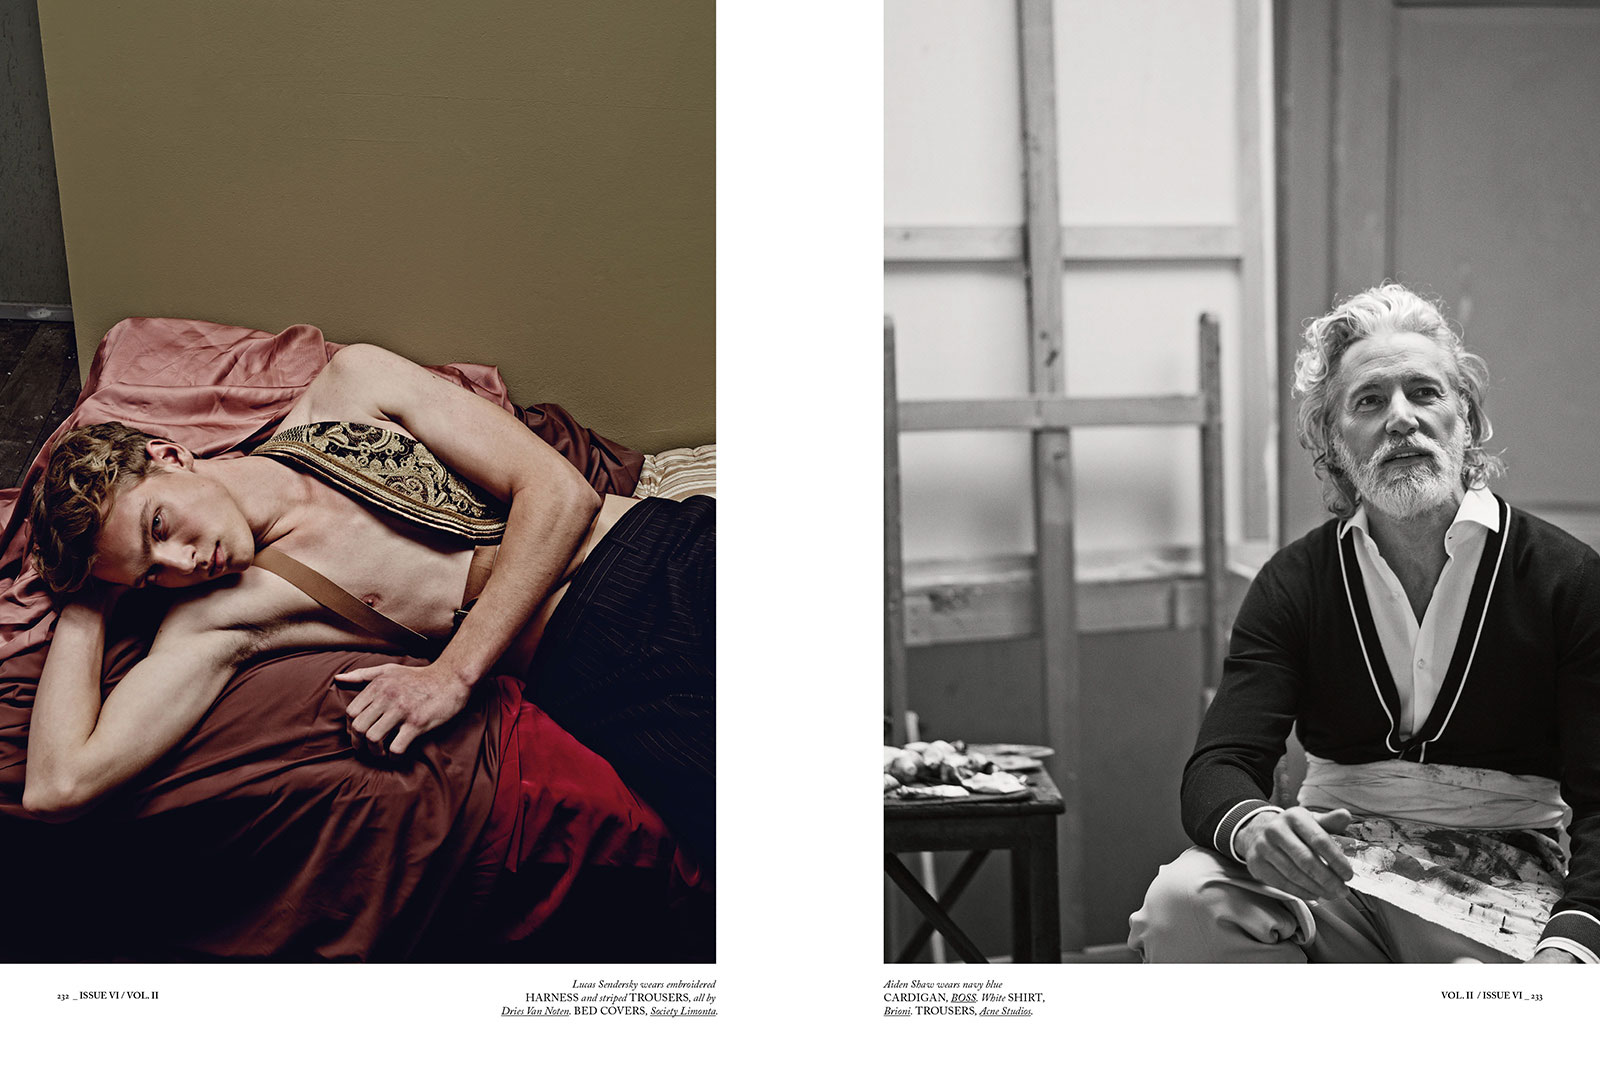 Accidental-Vocation-by-Giampaolo-Sgura-For-Hercules-Universal-SS-2015-Issue-DerriusPierreCom-10